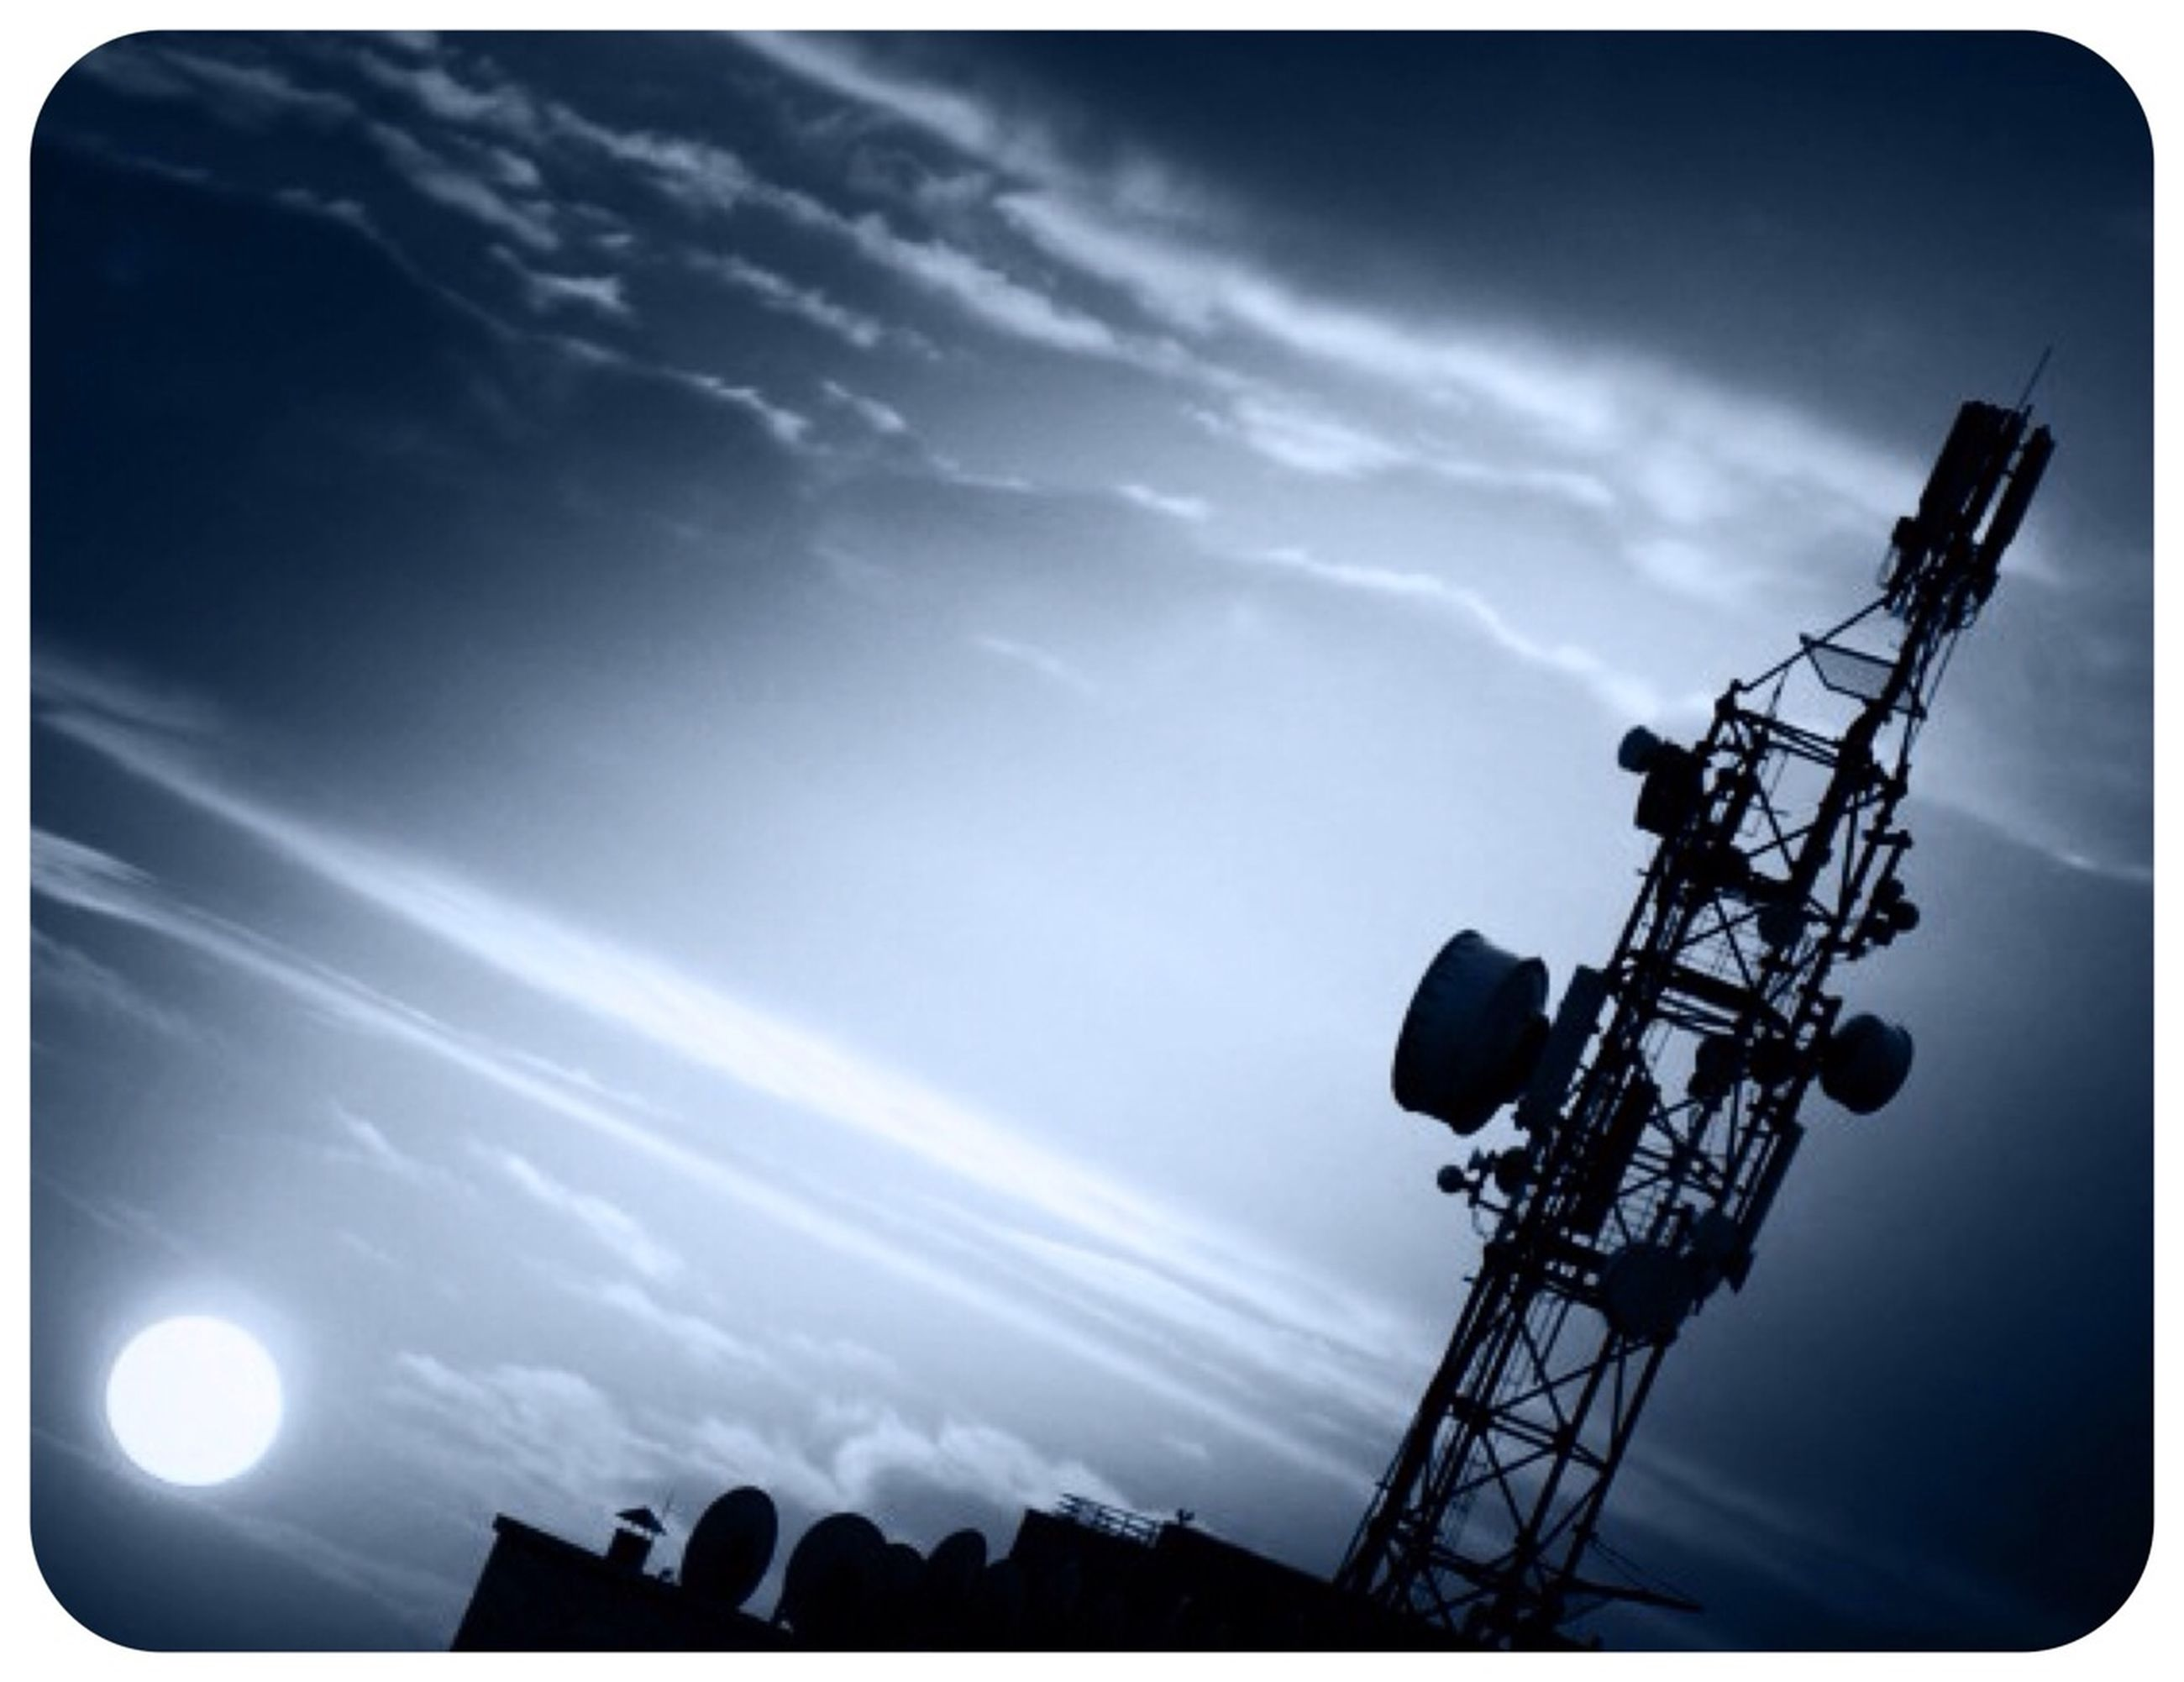 low angle view, sky, transfer print, silhouette, auto post production filter, technology, electricity, cloud - sky, construction site, street light, lighting equipment, fuel and power generation, built structure, crane - construction machinery, electricity pylon, tall - high, industry, cloud, power supply, cloudy